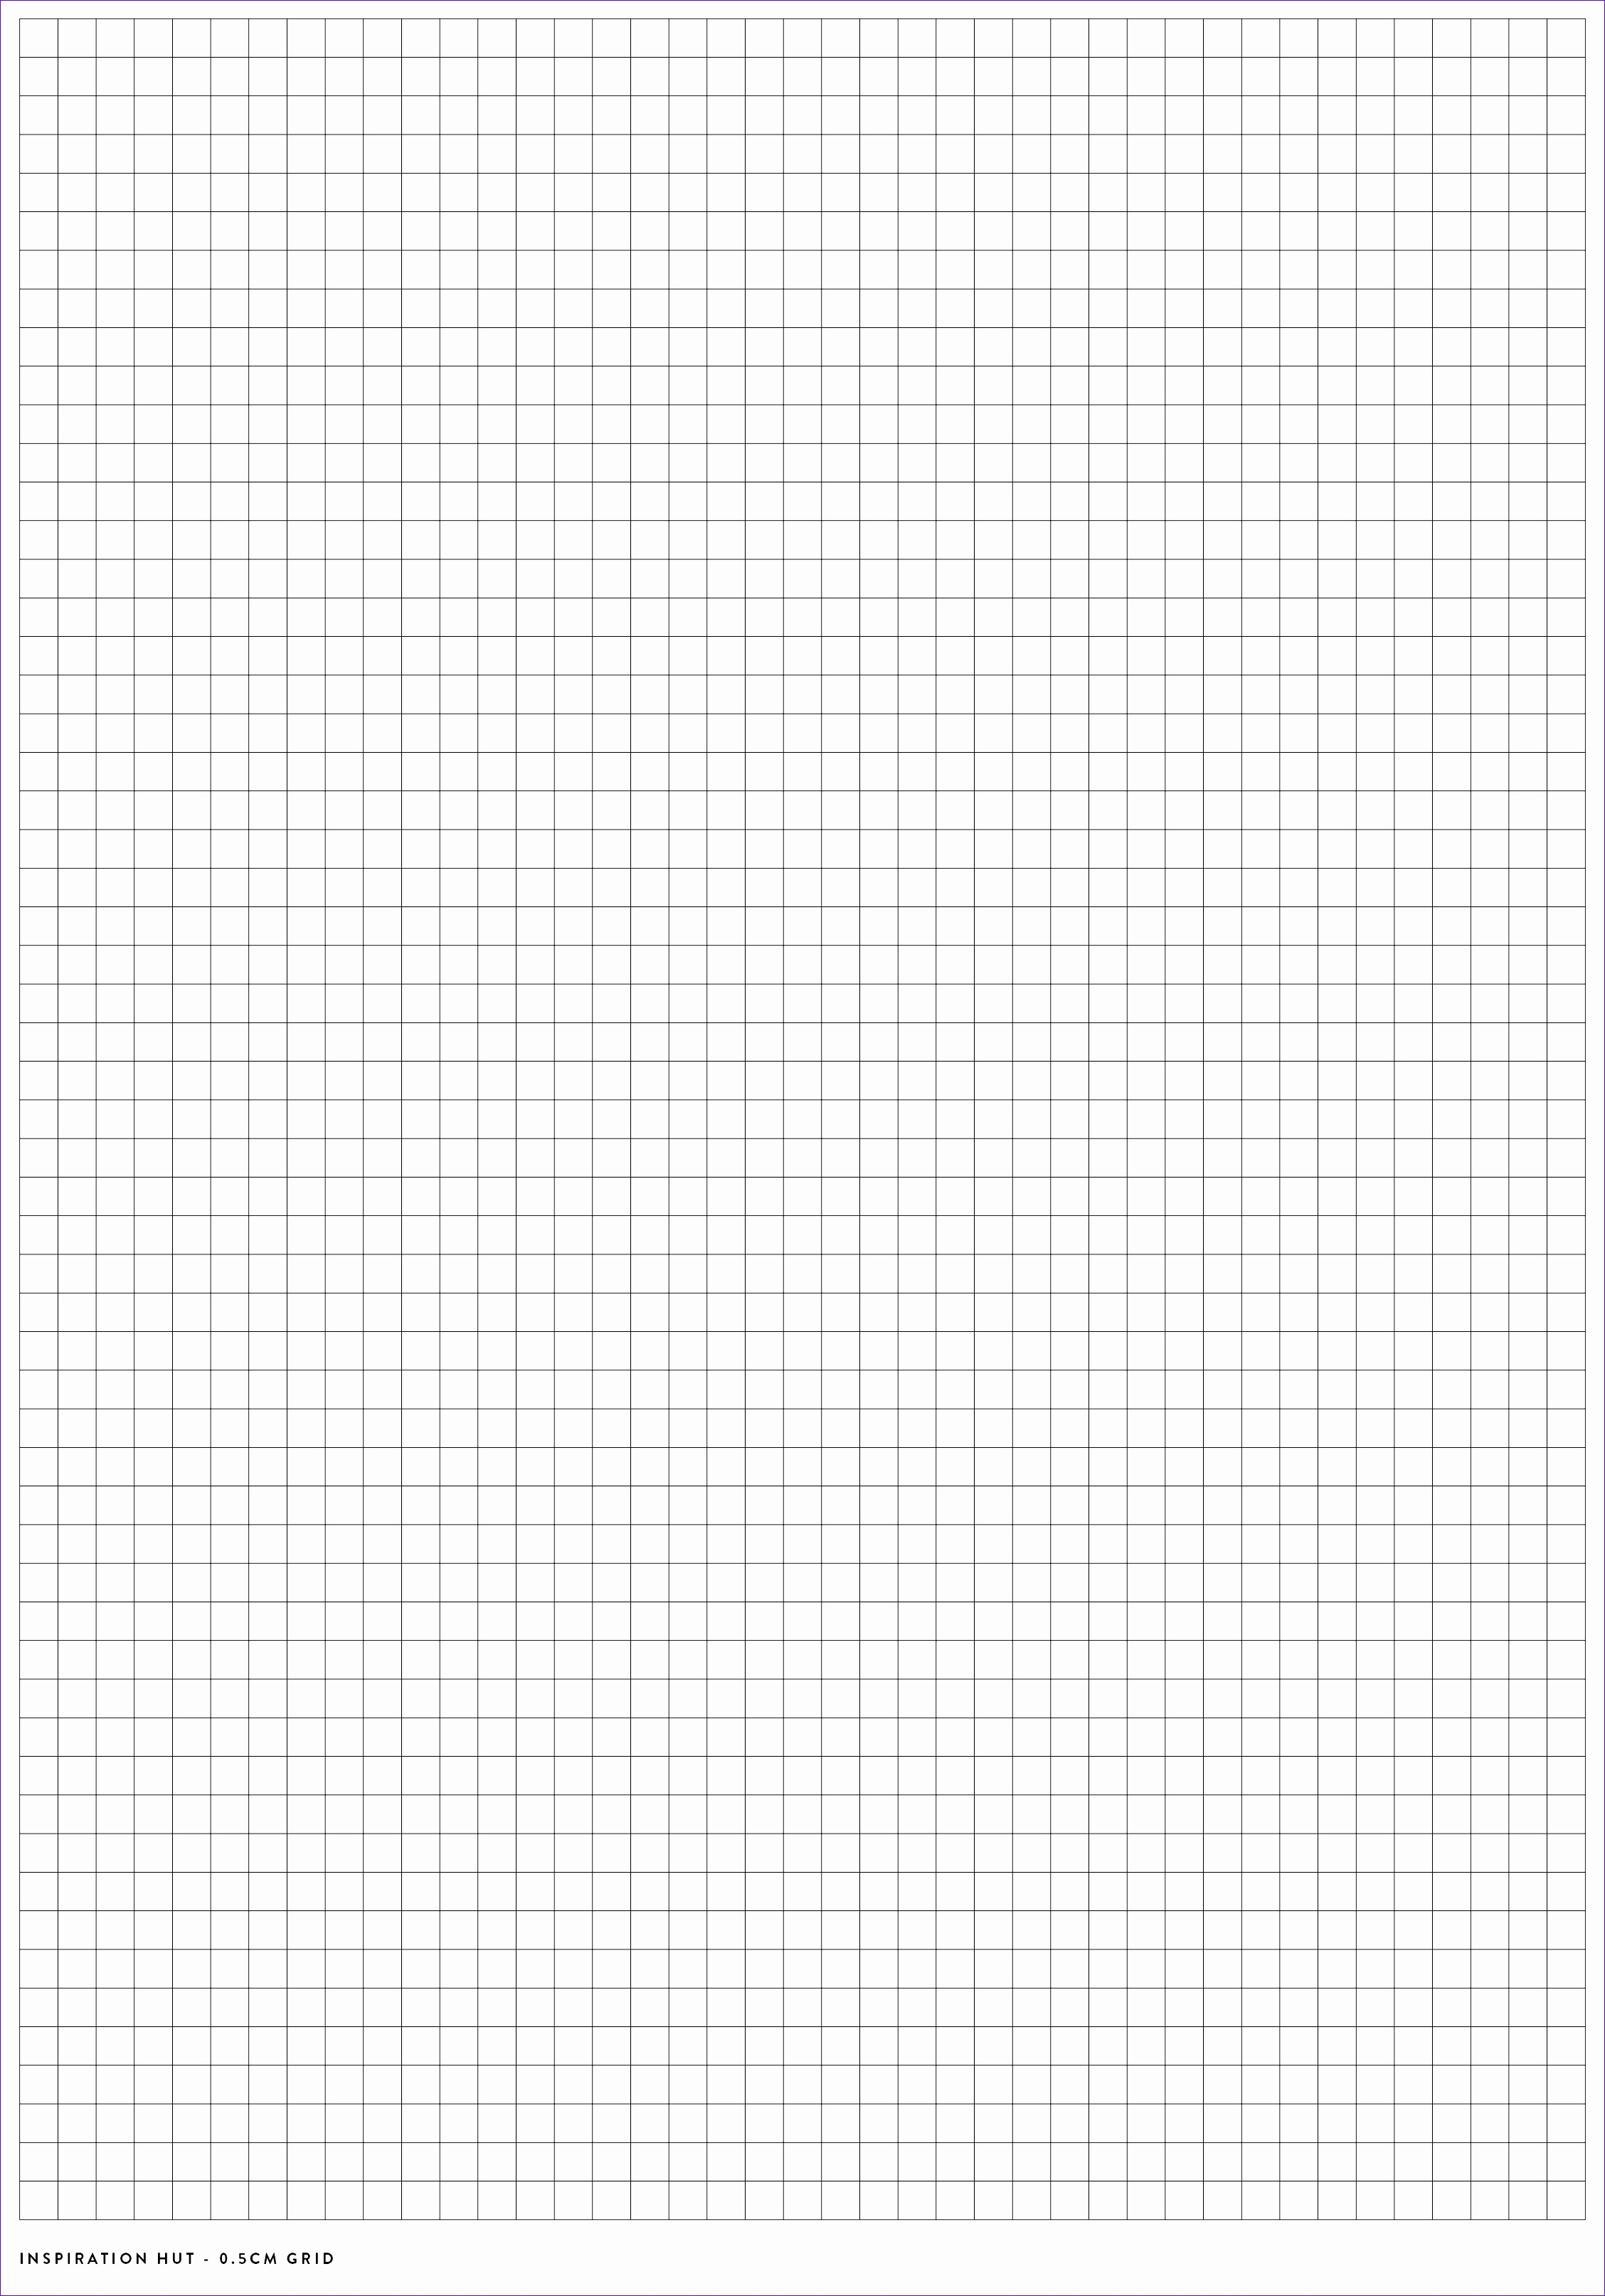 how to make graph paper in word 2010